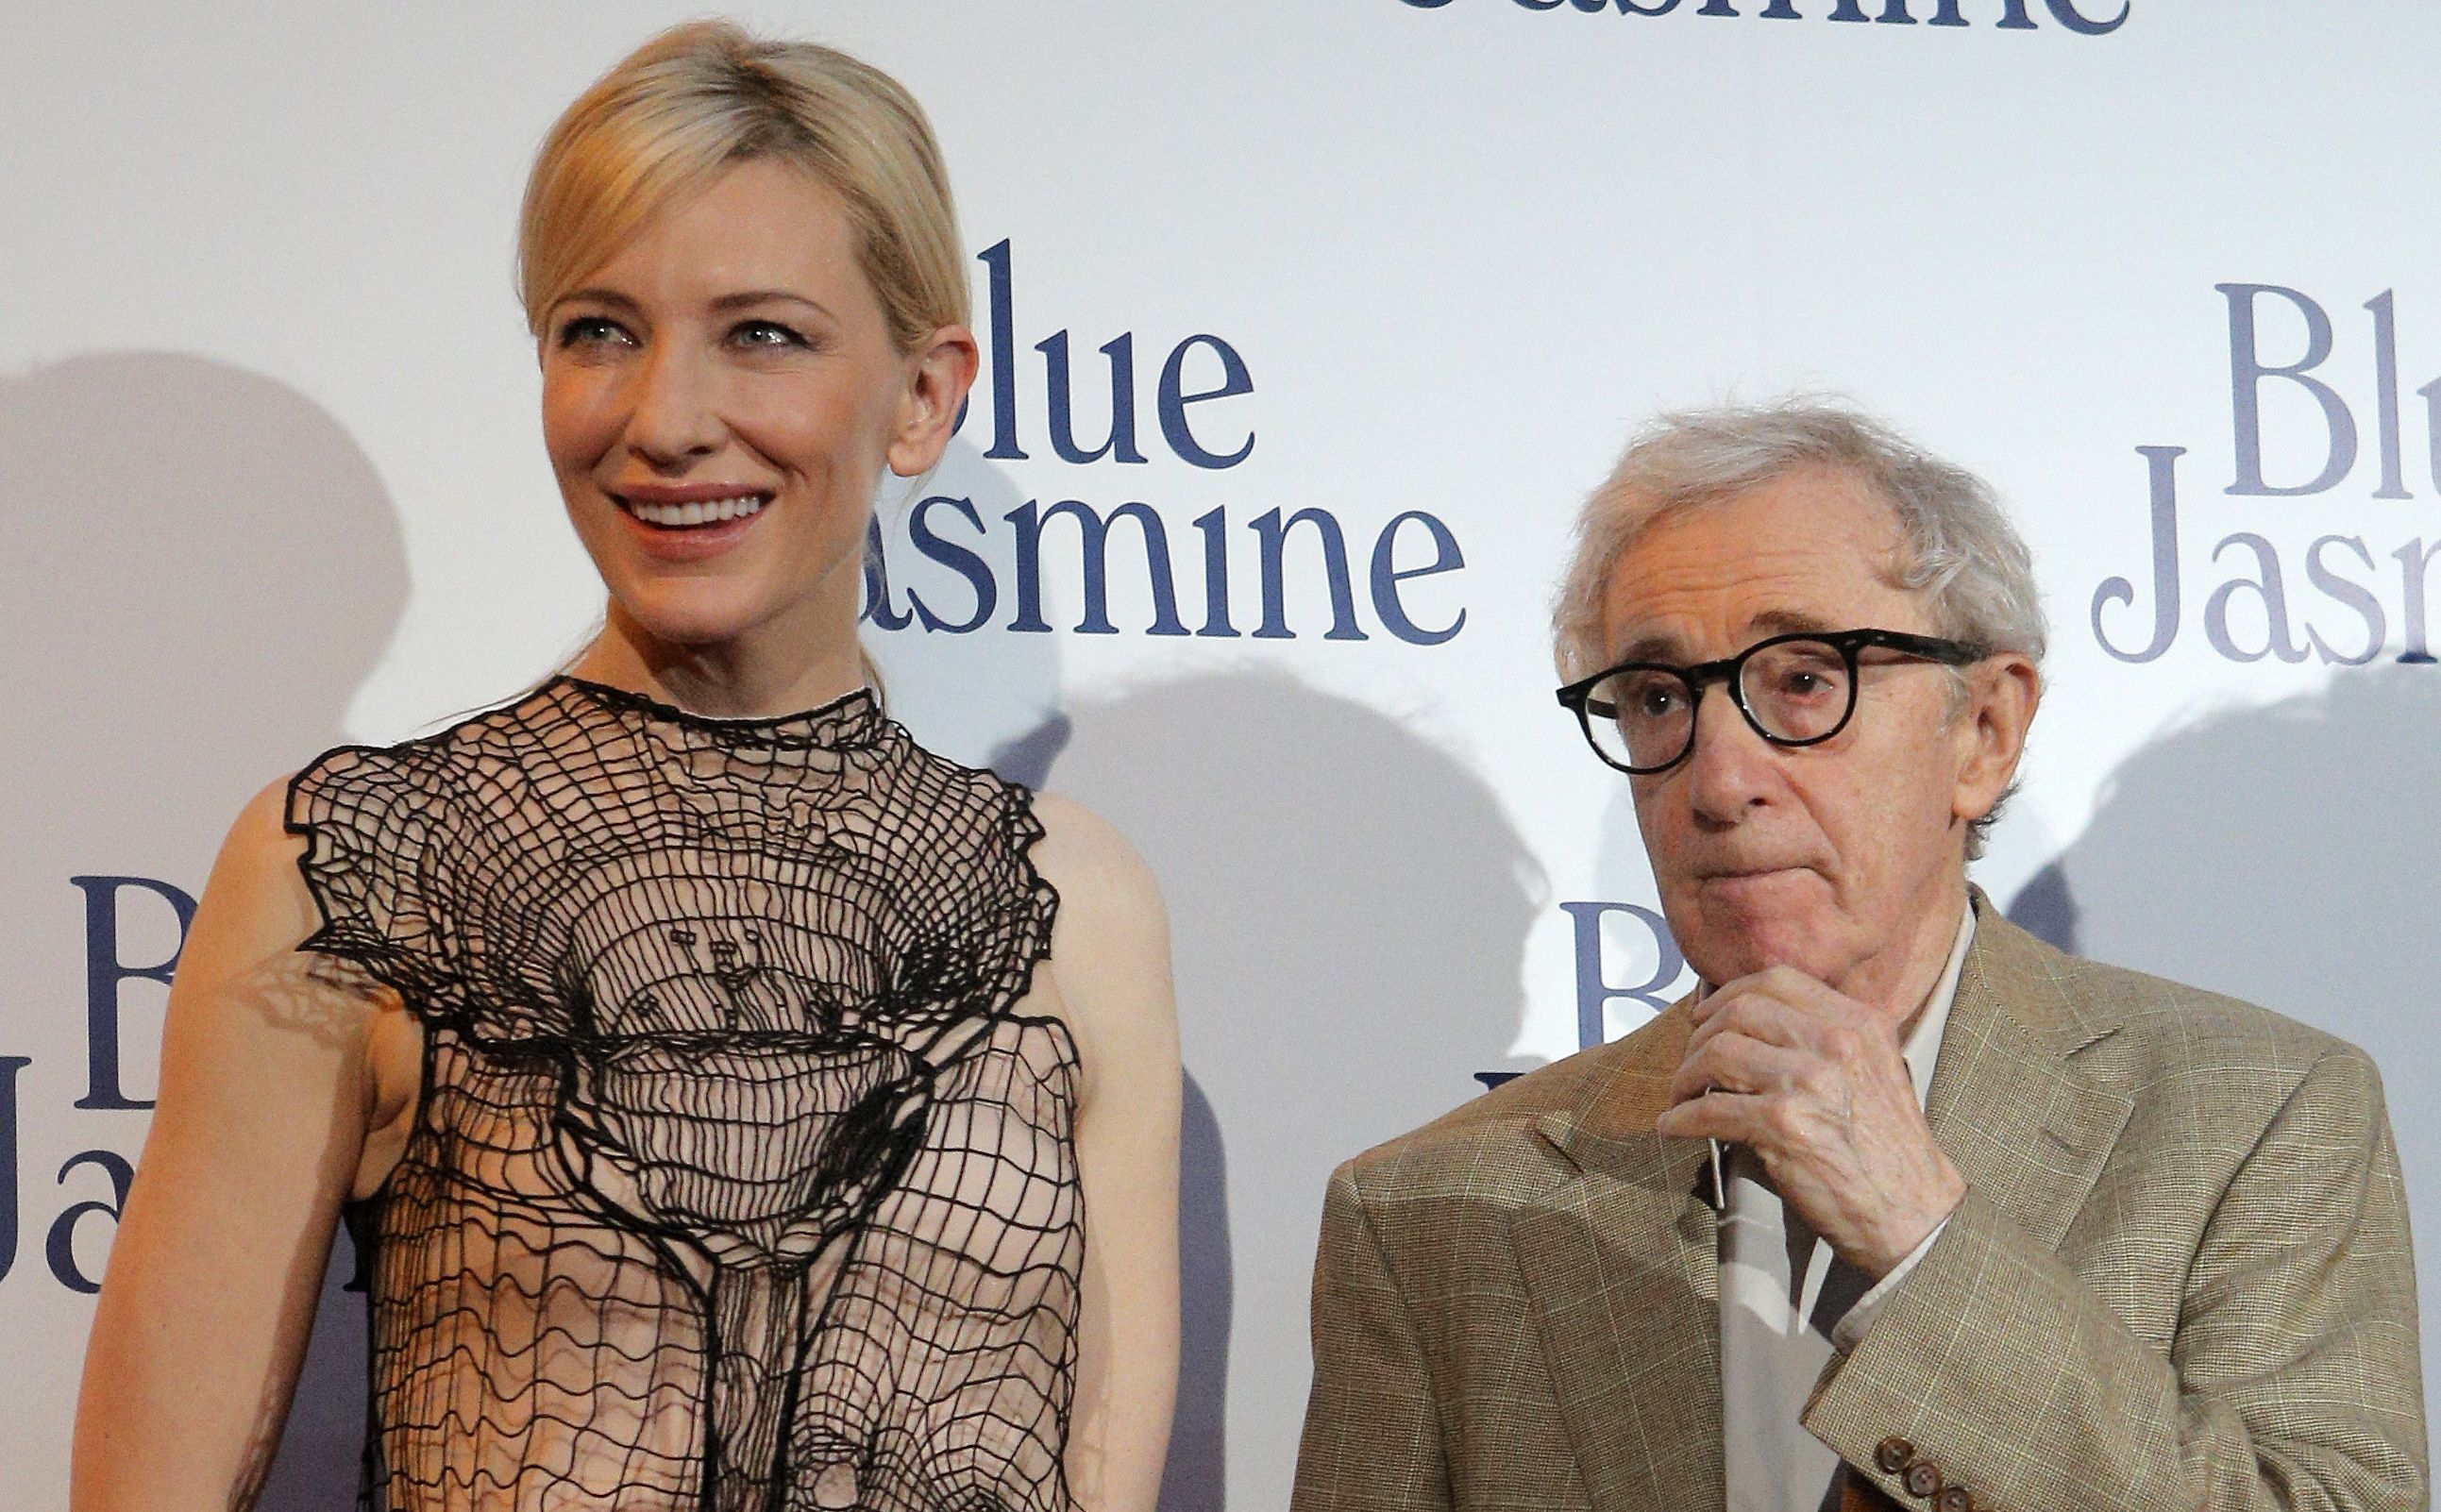 Cate Blanchett Breaks Silence on Woody Allen: 'If the Case Needs to Be Reopened, I Am in Support of That'